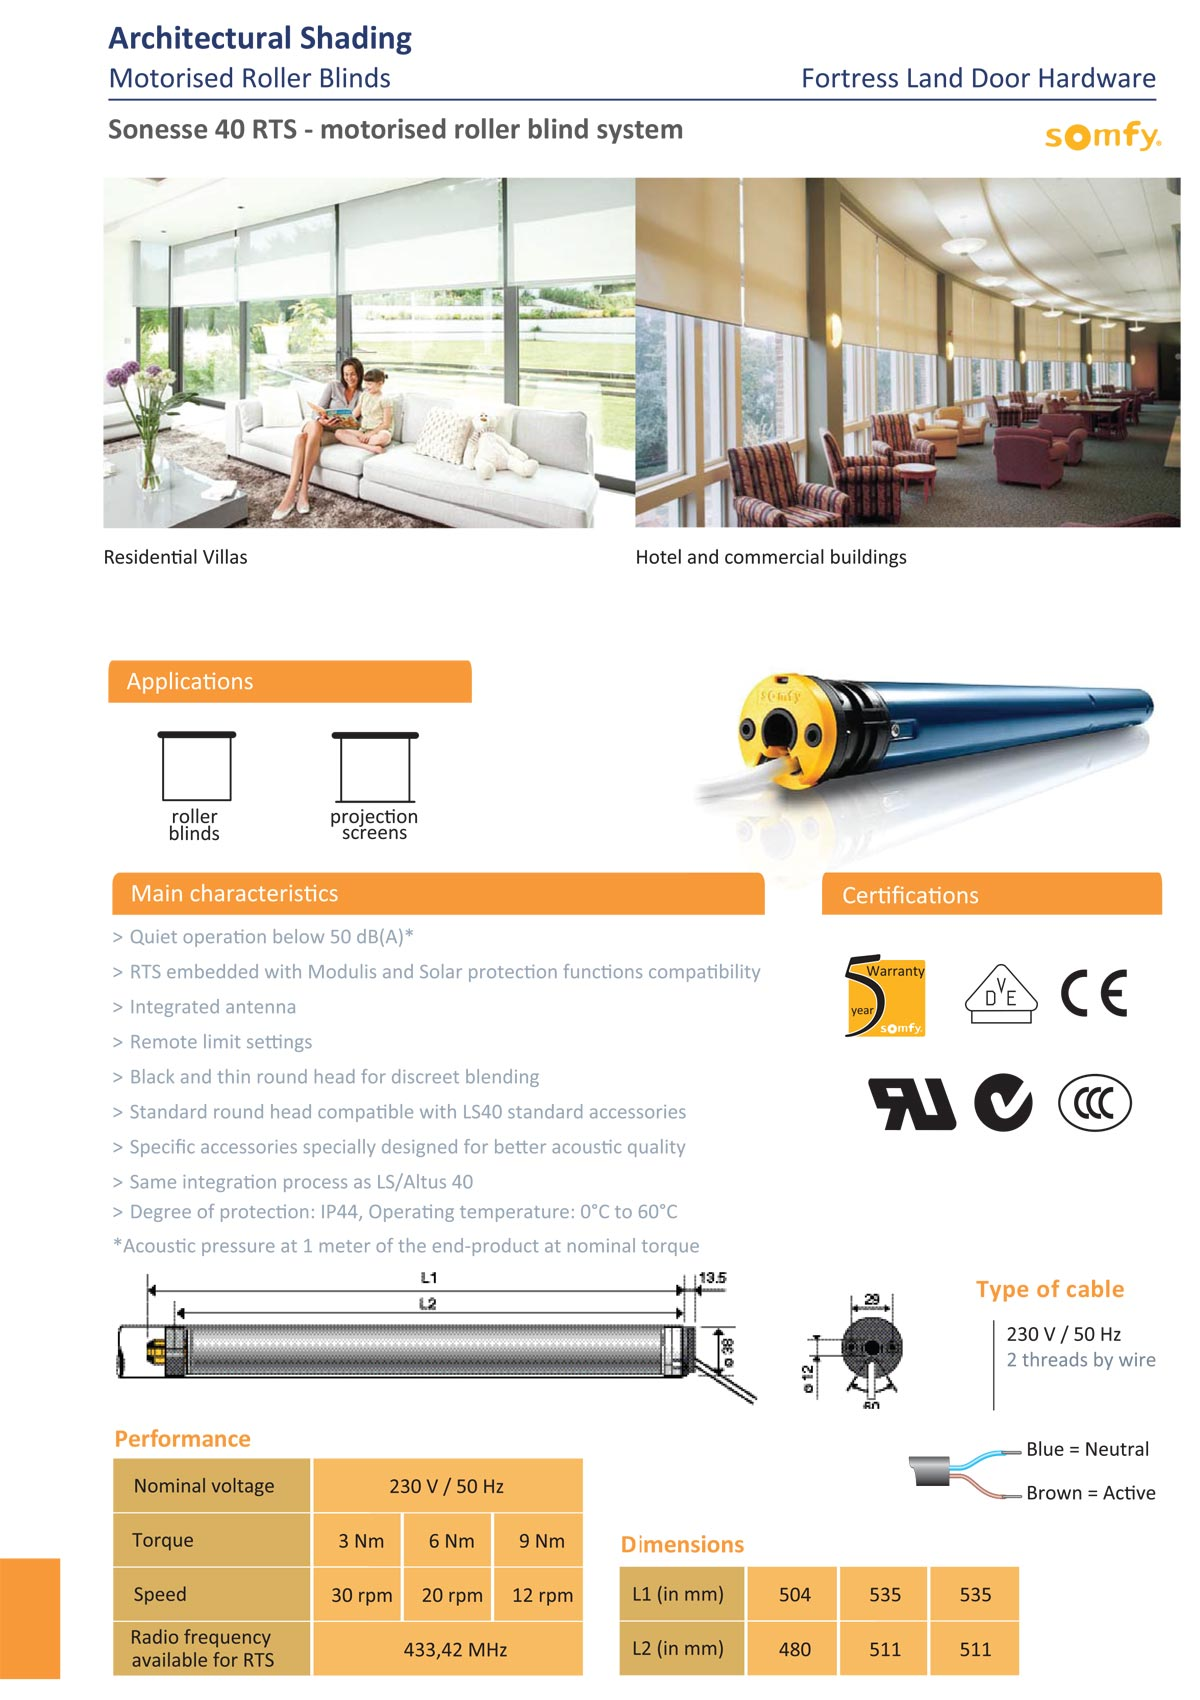 somfy motor, roller blind motor, automatic curtain, porinted roller blind, sunscreen blind motor, remote roller blind, black out roller blind, automatic roller blind, solar control, sun control, windor cover, Fortress Land Security Company Yangon, Myanmar